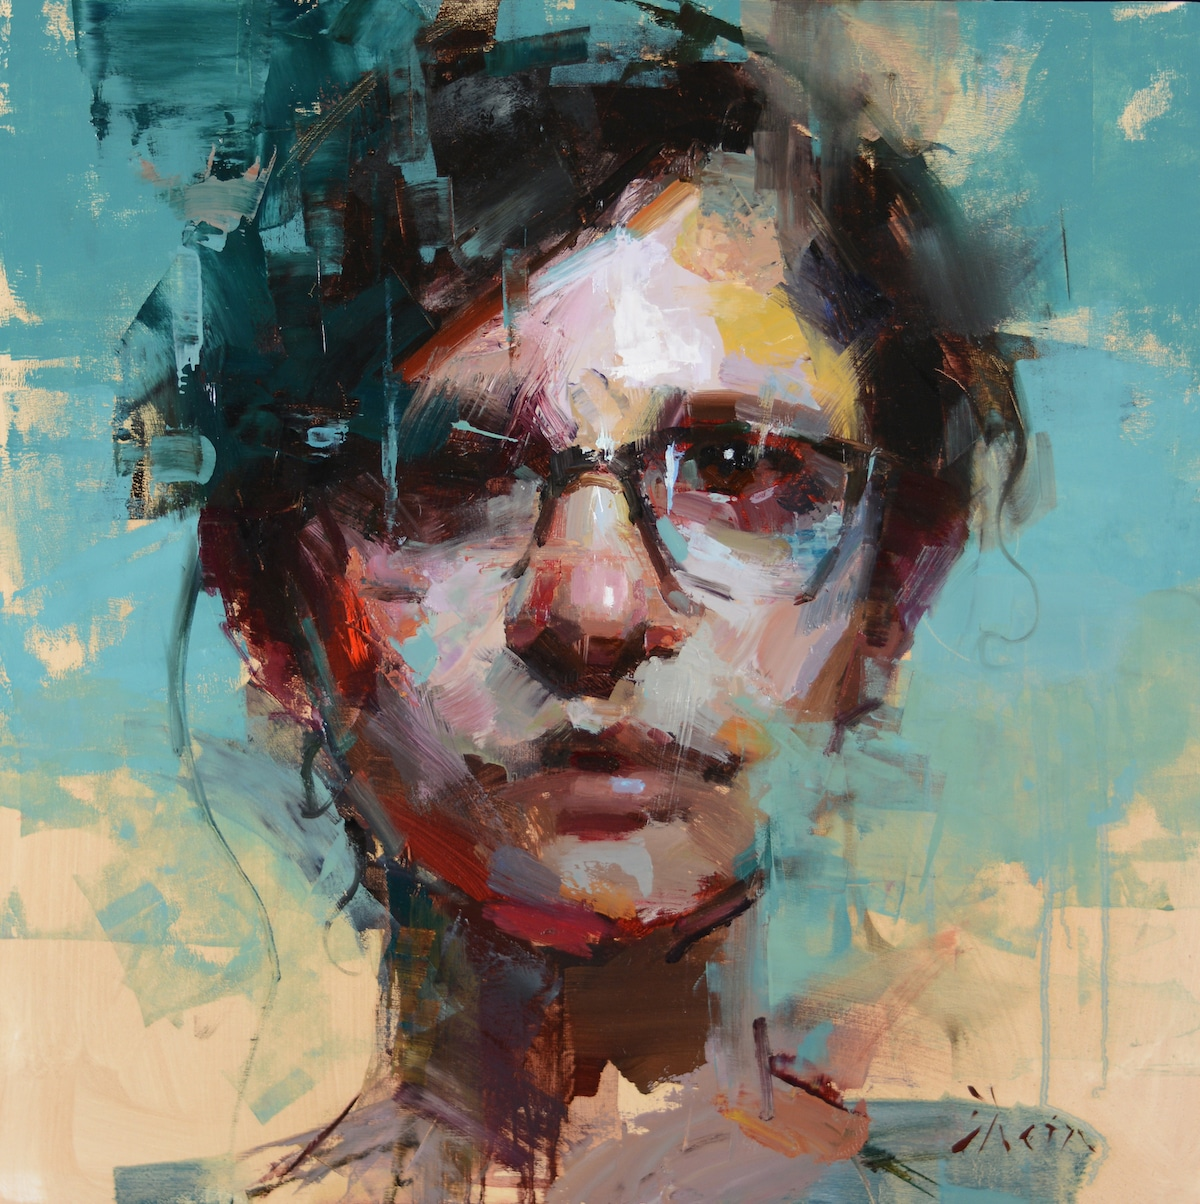 Oil Painitngs by Jacob Dhein